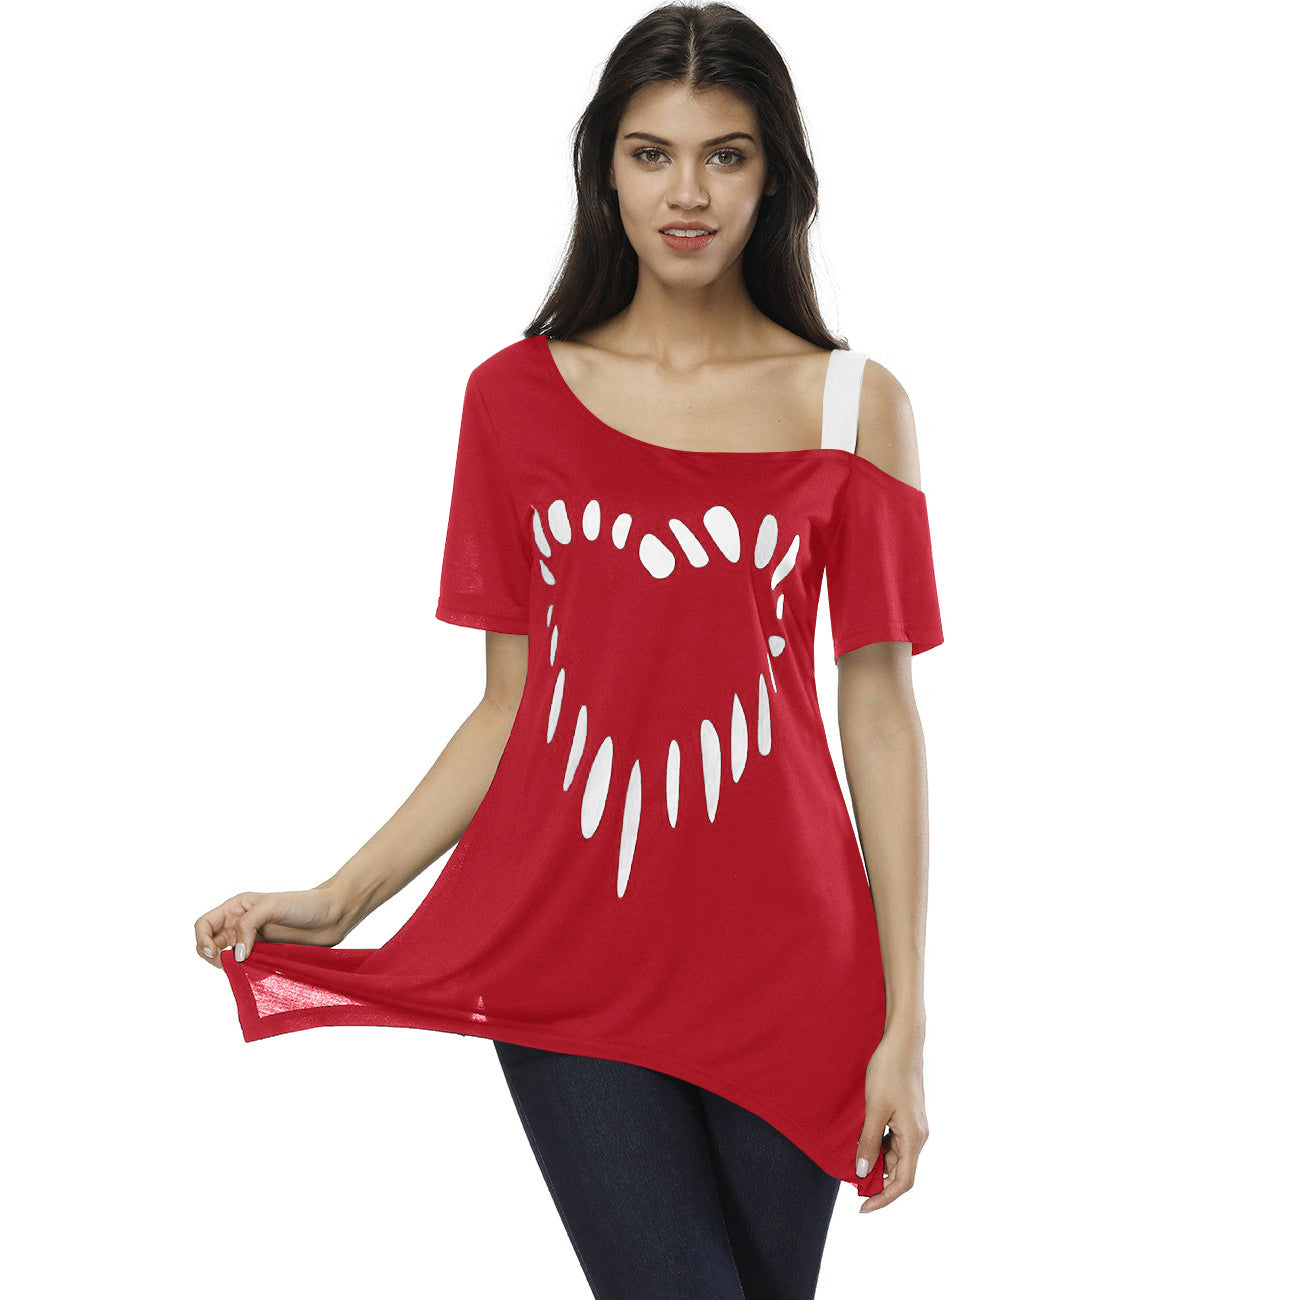 Nextmia Strapless Cold Shoulder Love Printing Short Sleeve Skew Collar T-Shirt For Ladies-Red-BE8809